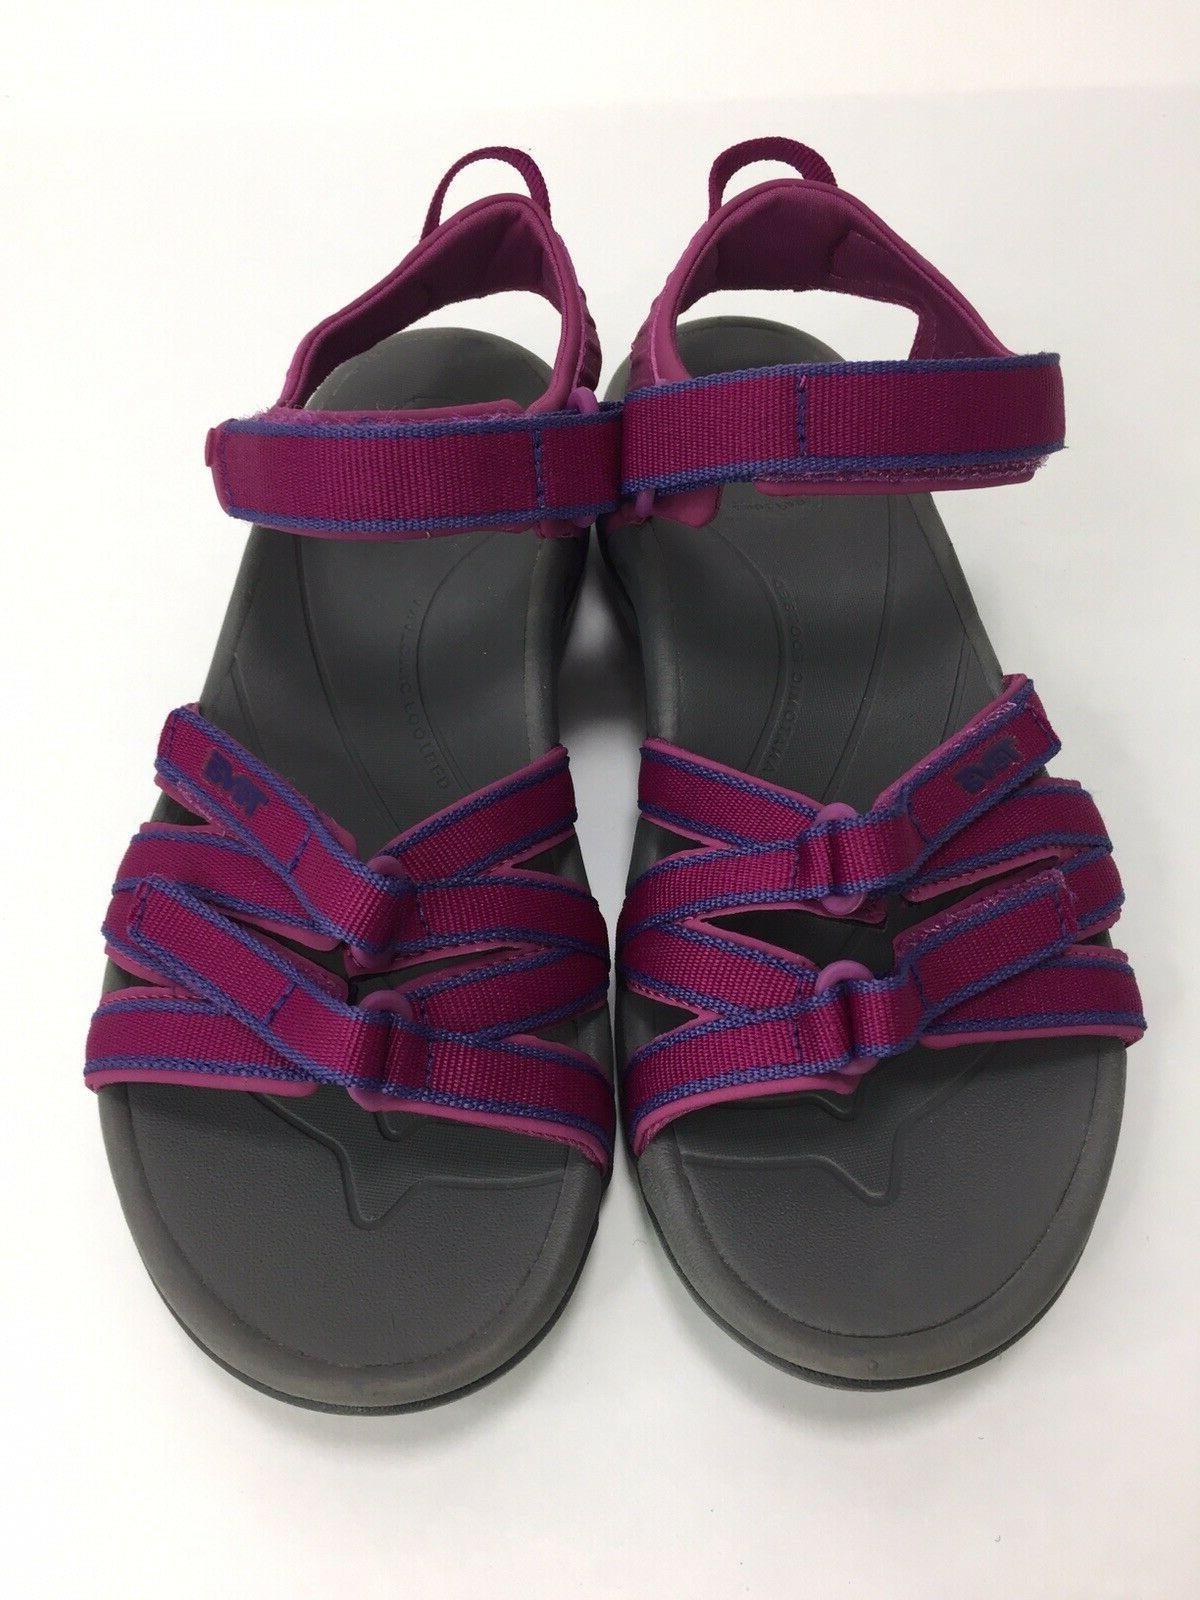 New! Women's Hiking Purple Pink